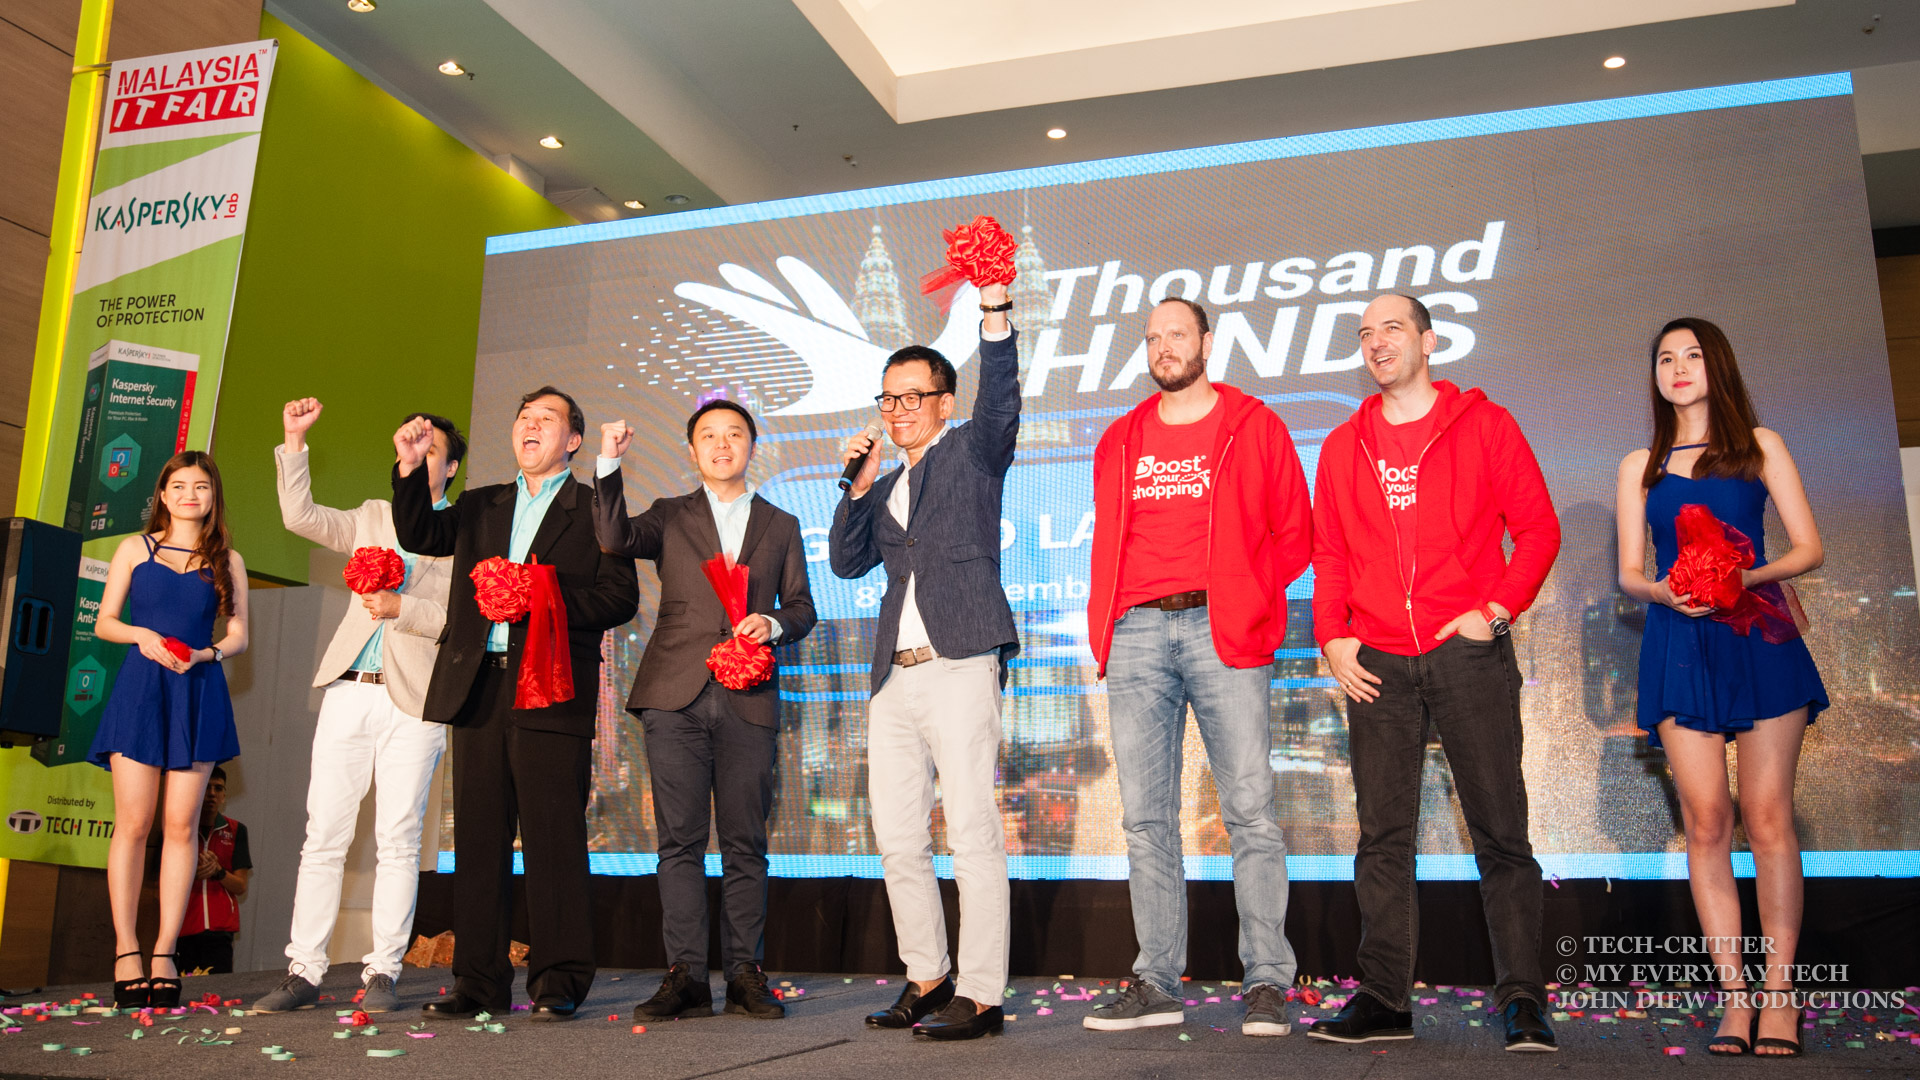 Thousand Hands App Launch: Auction Your Problems Away